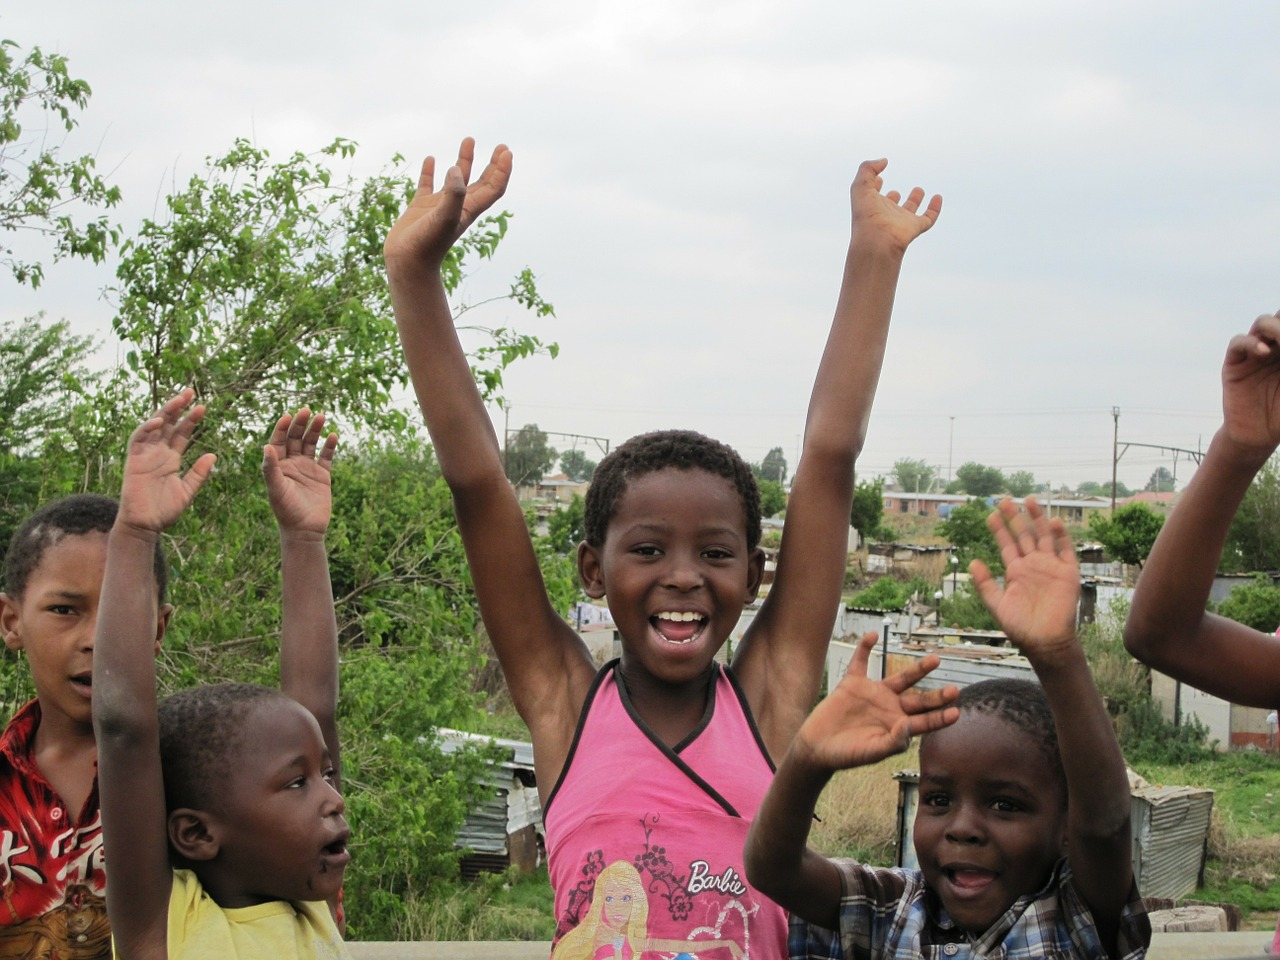 Children from the Soweto township